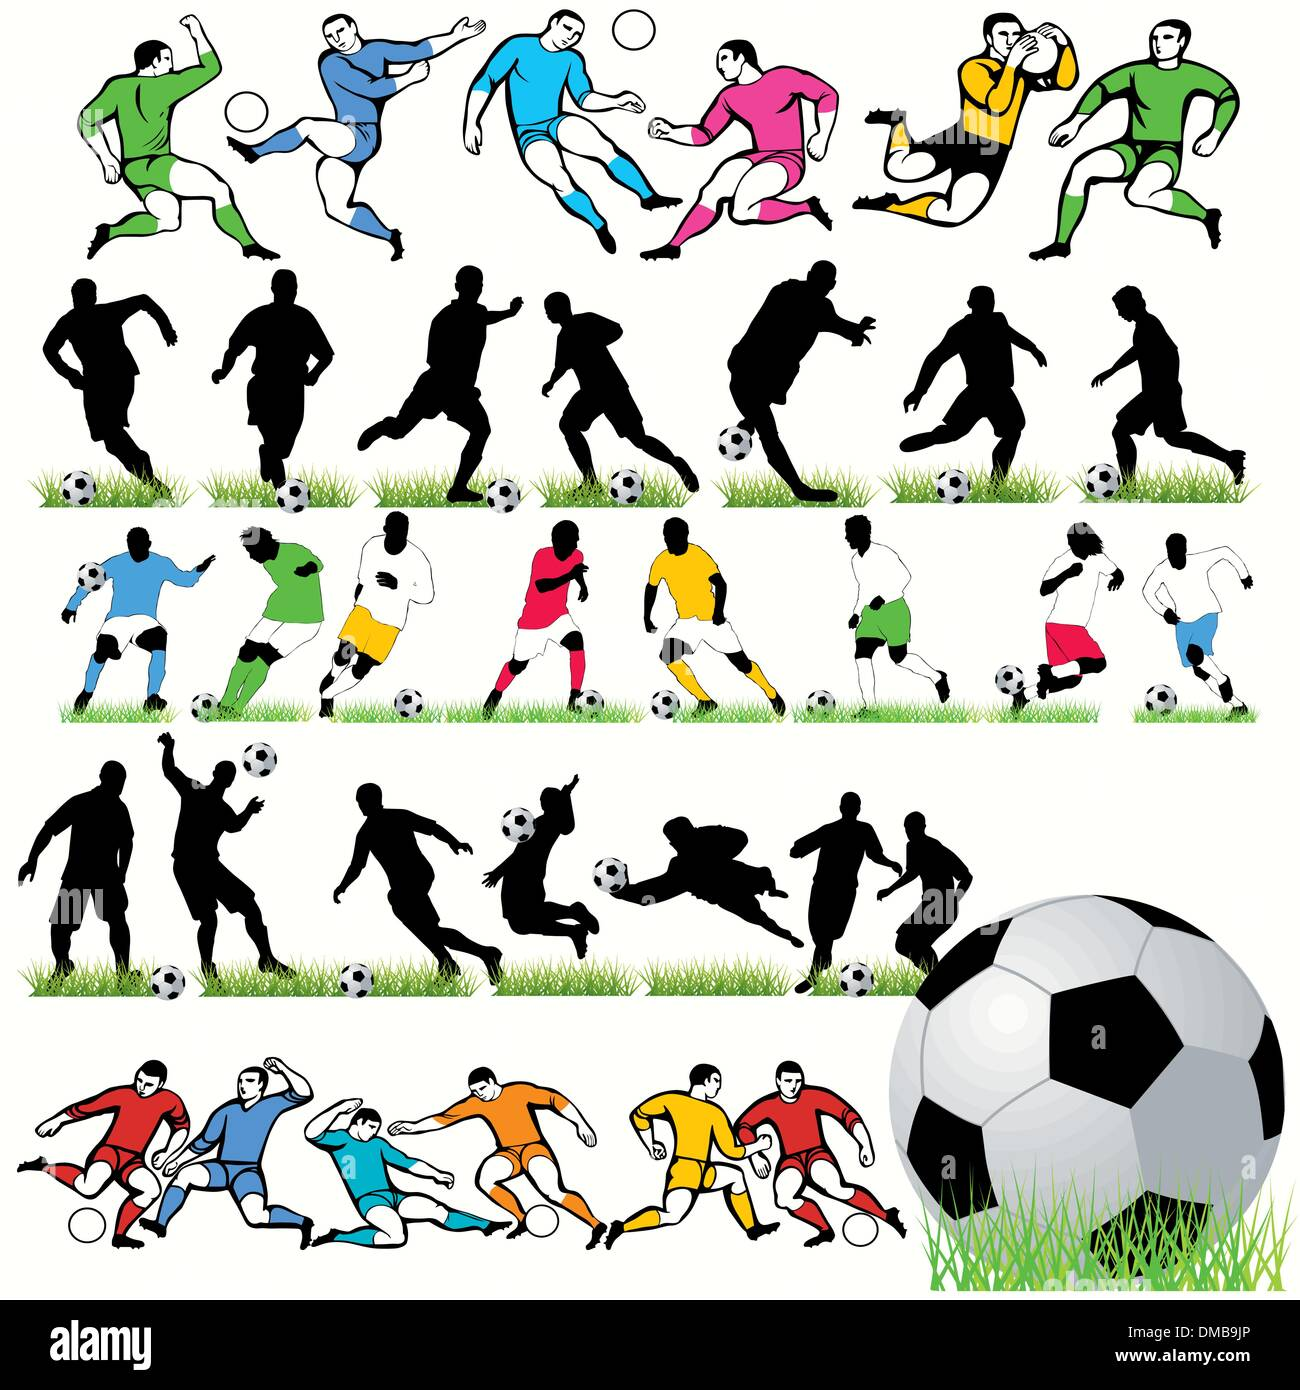 34 Football Players Silhouettes Set - Stock Vector